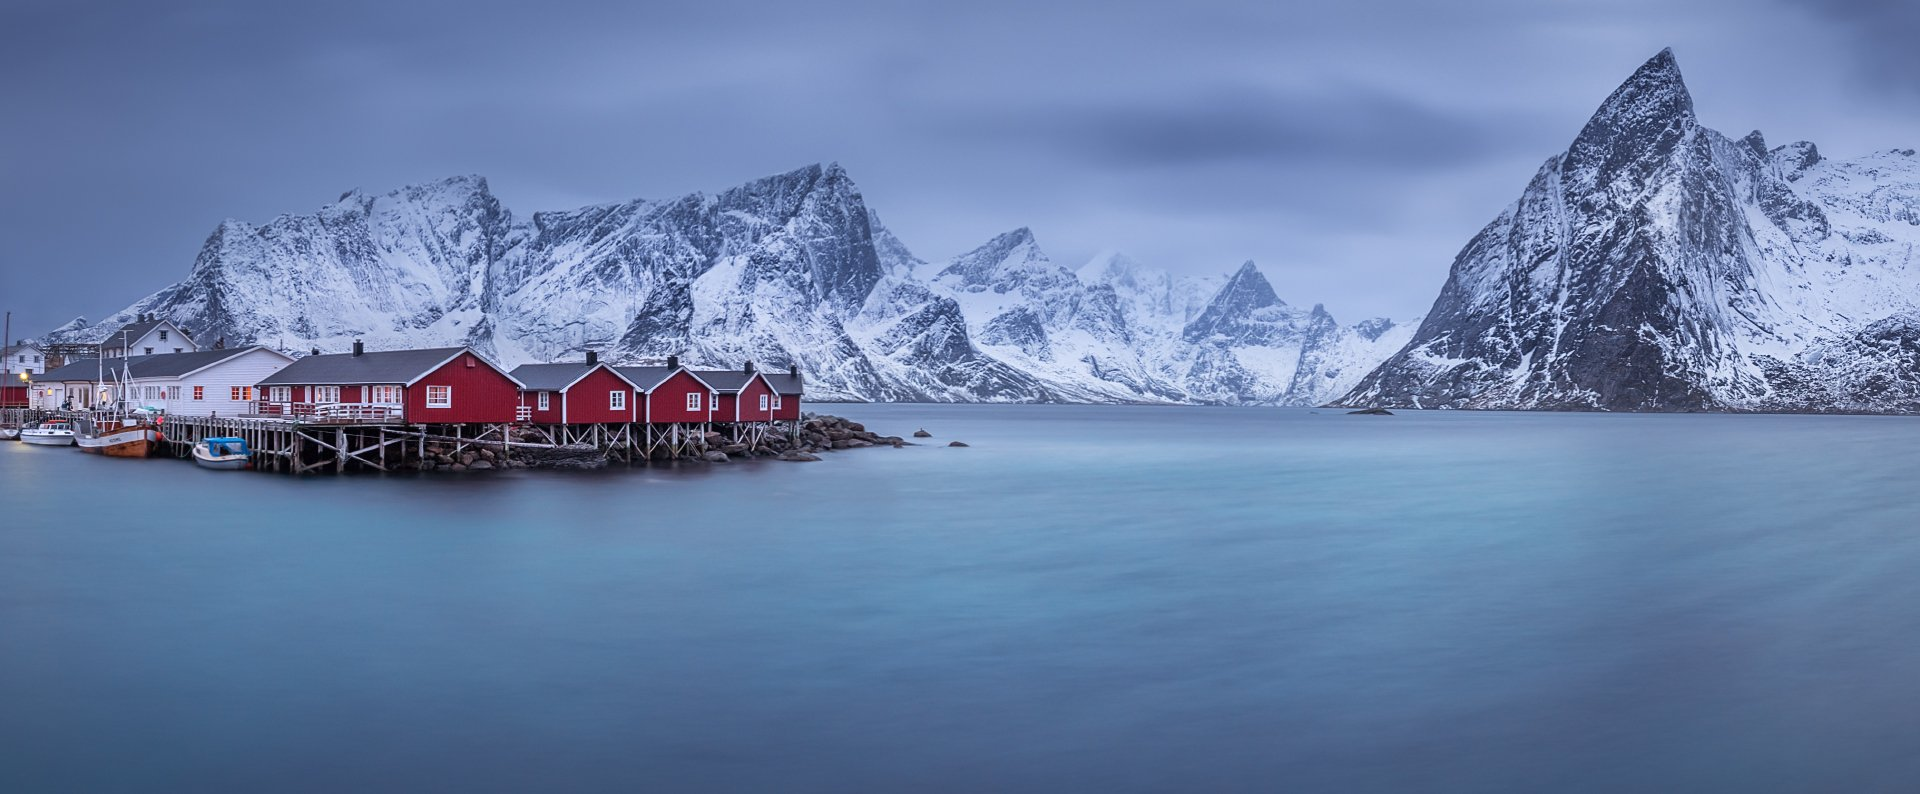 норвегия, лофотены, norway, lofoten, Сергей Алещенко